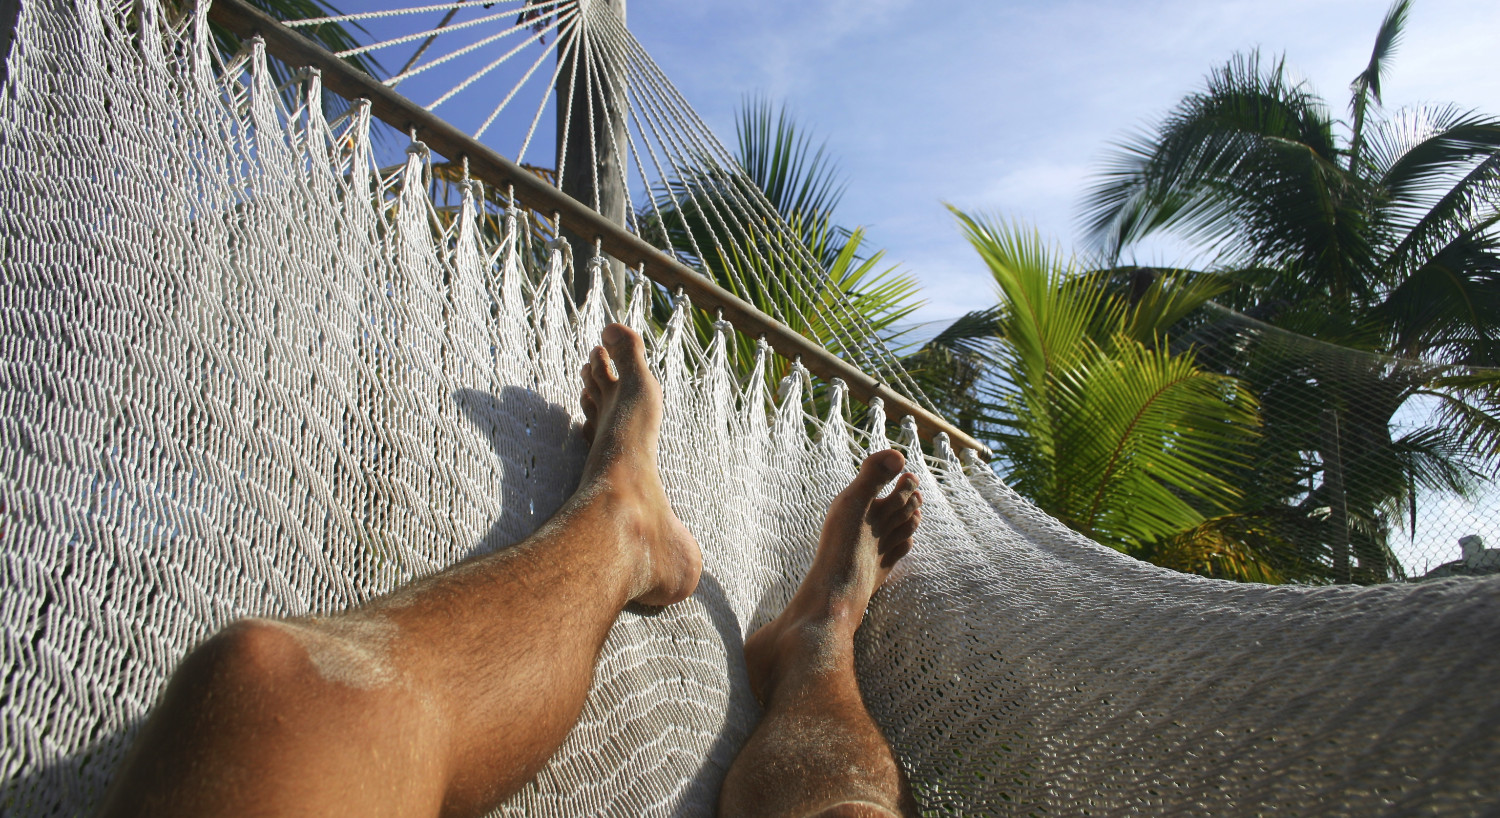 A man's tanned legs relax on a rope hammock under palm trees.